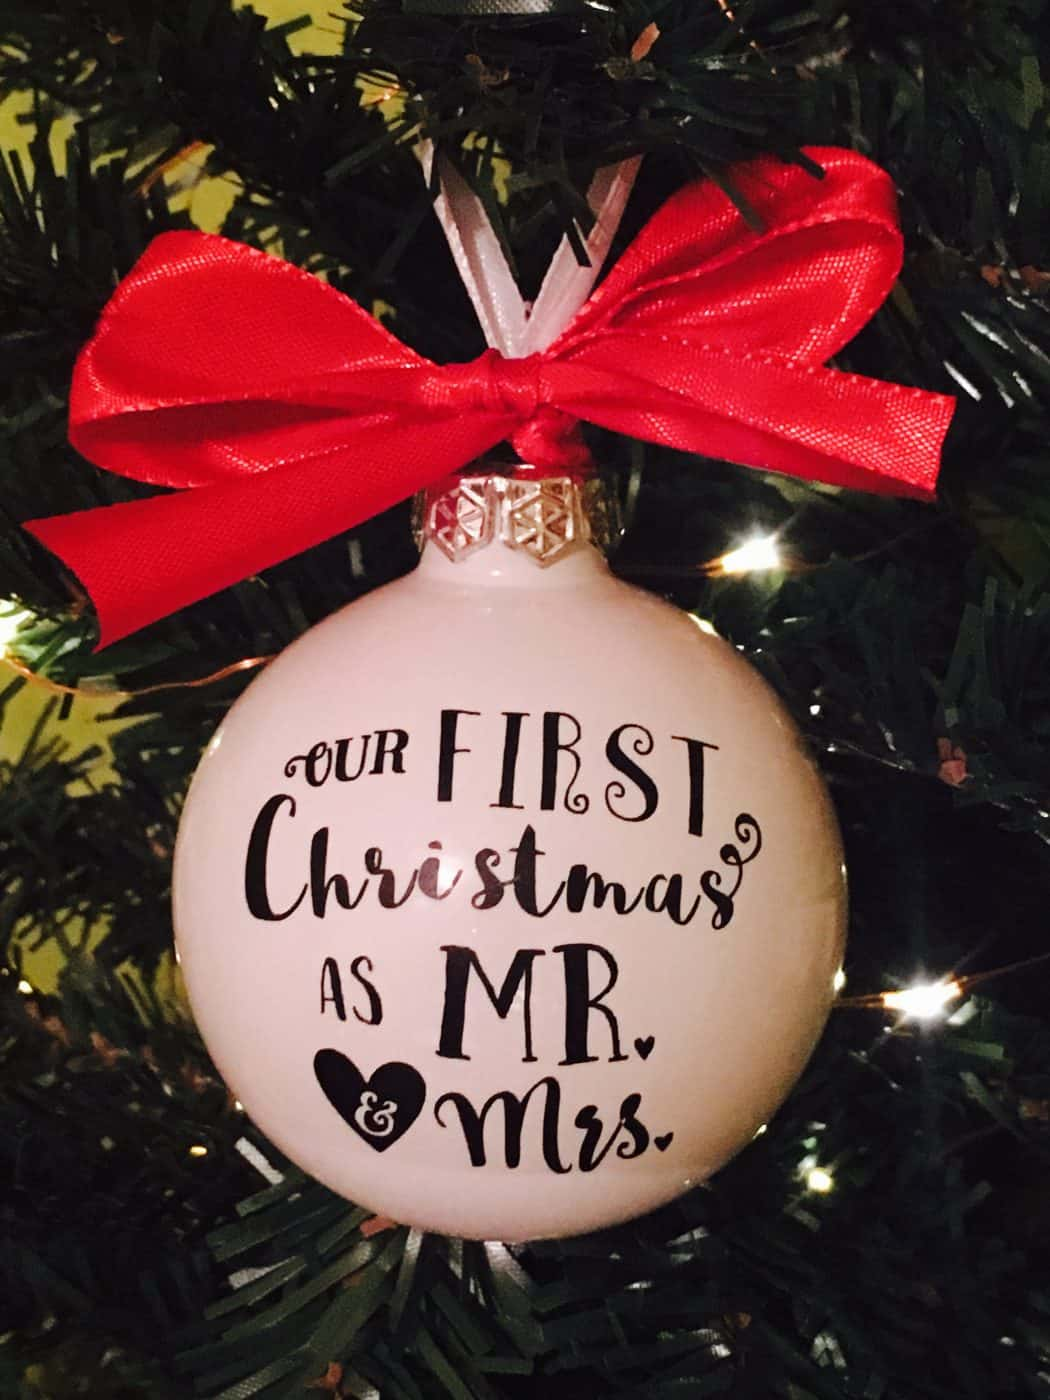 Preferential Vinyl Free Cut File Day Planner Diy Mr Mrs Ornament Vinyl Free Cut File Ornament Canada Ornament Amazon Diy Mr Mrs Ornament baby First Christmas Ornament